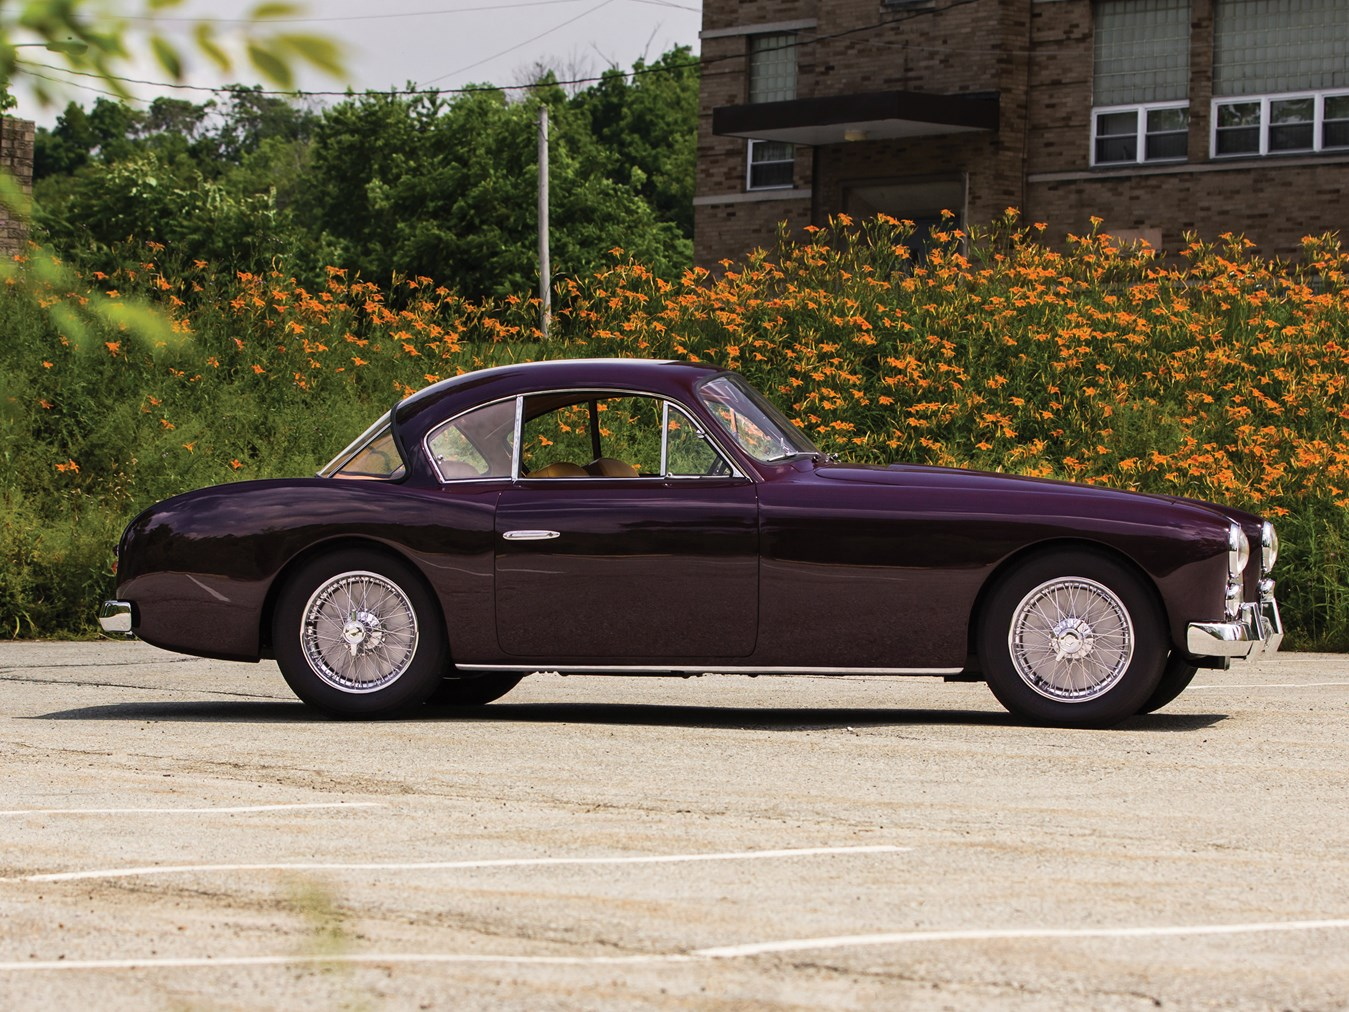 This 1954 Talbot-Lago T26 GSL exhibits the classic lines of the post war Talbot-Lago.